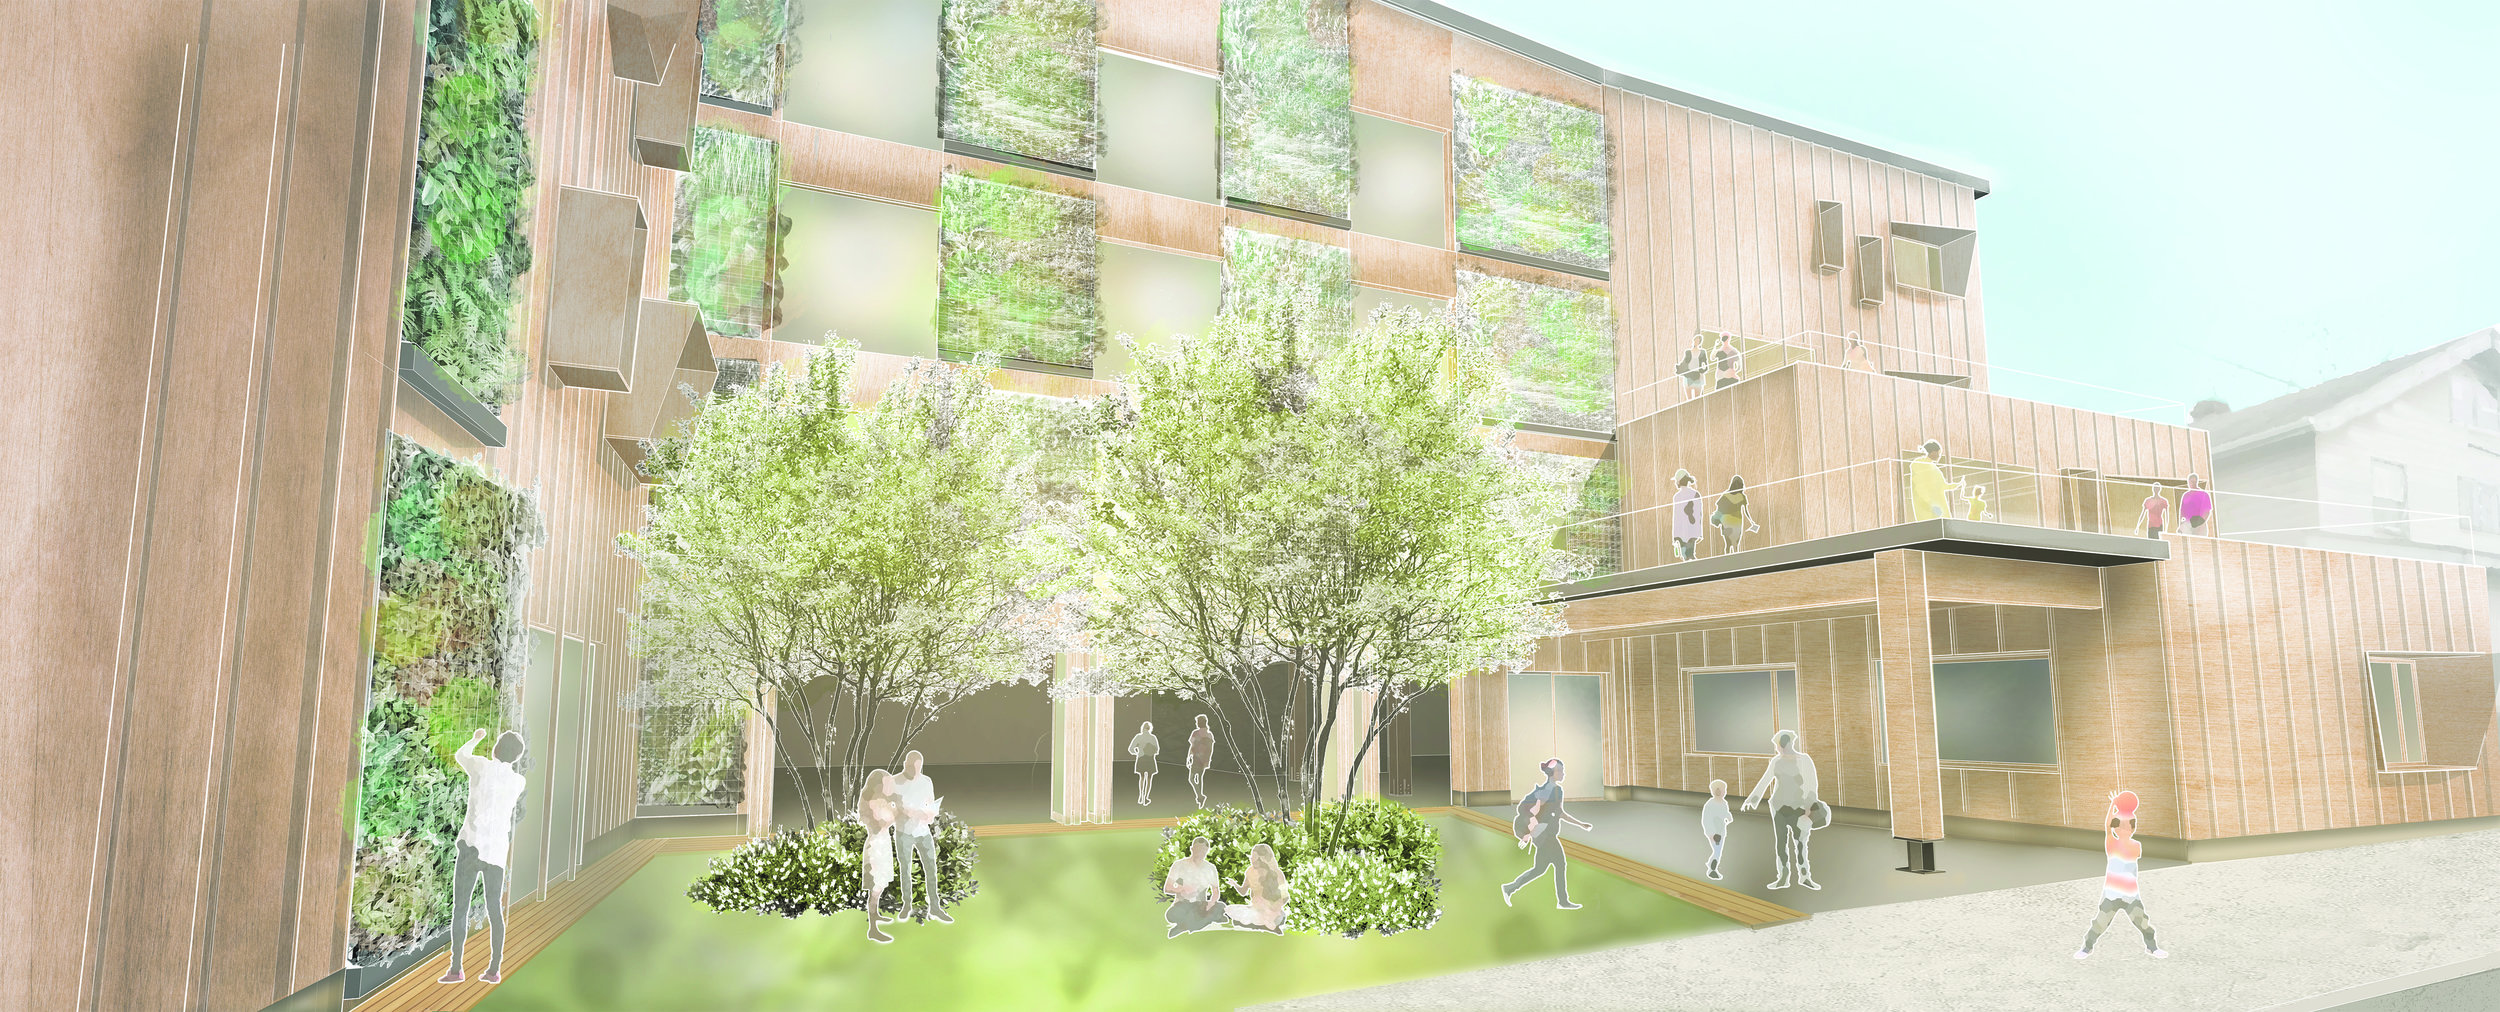 Can a school promote environmental sustainability and a center for urban agriculture? -